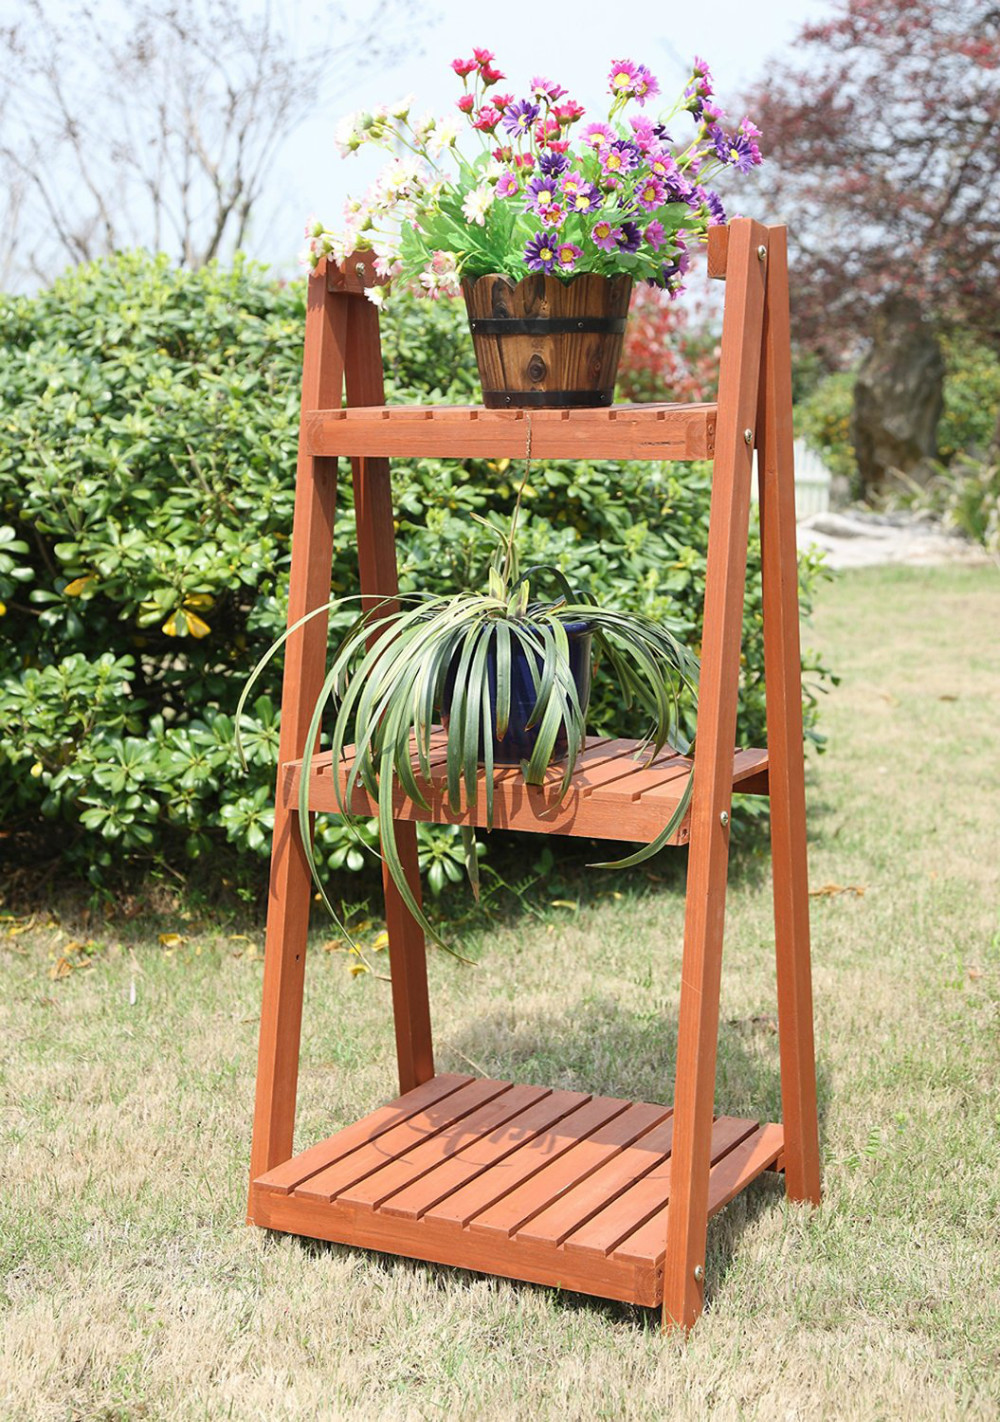 Home and garden outdoor wood ladder 3 tire plant stand buy plant stand 3 tier plant stand - Tier plant stand outdoor ...